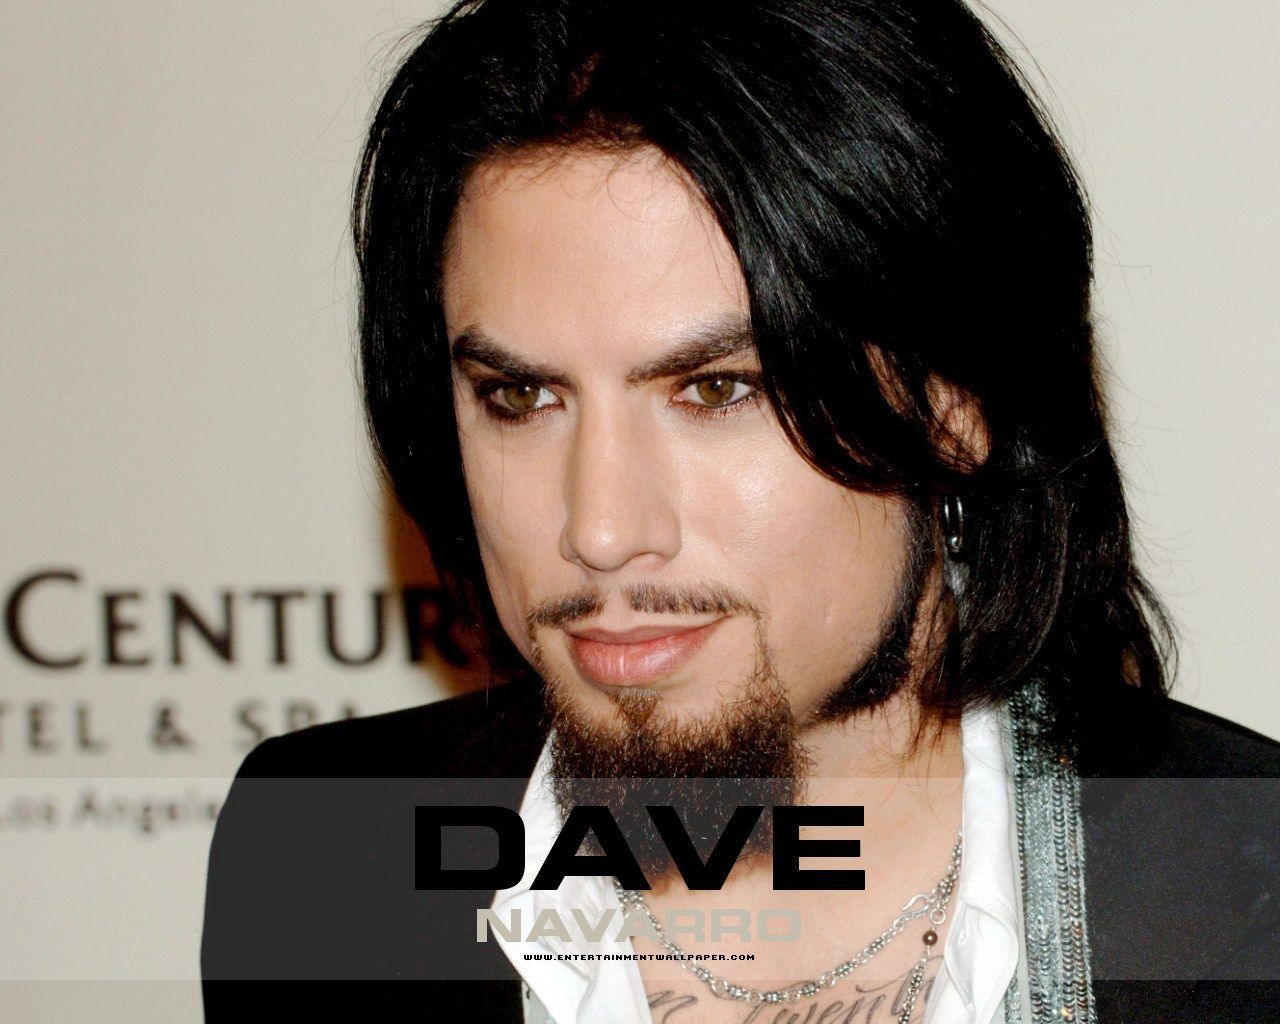 Dave Navarro A famous Rock Star is appearing as a guest